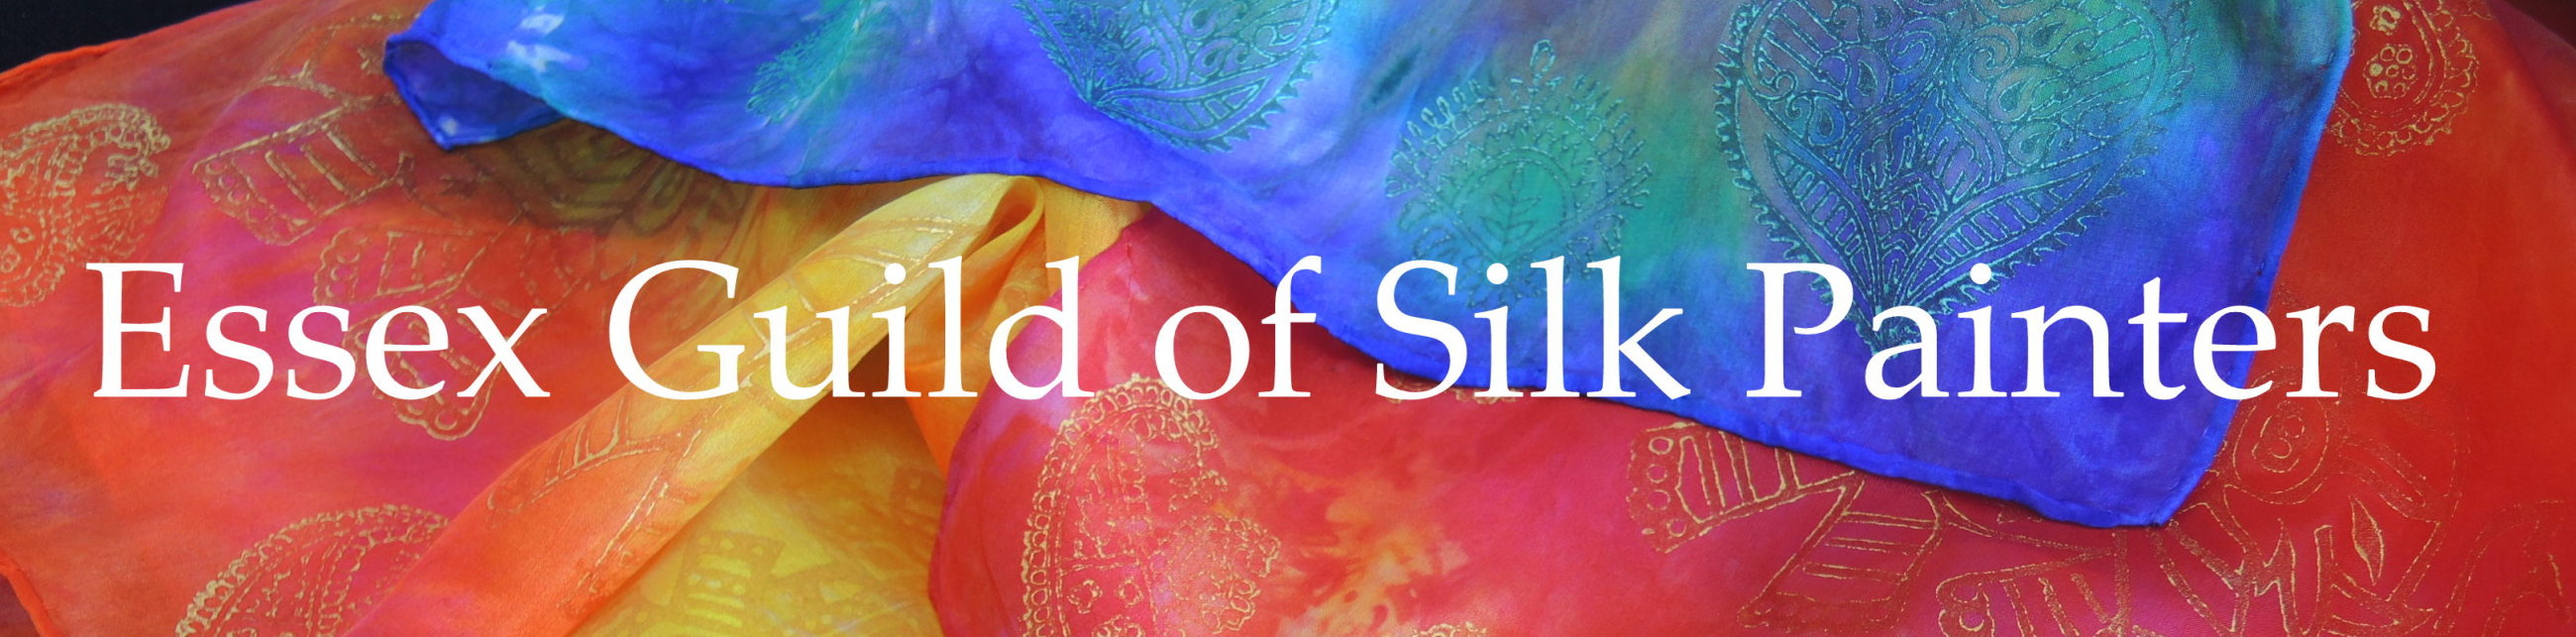 Essex Guild of Silk Painters